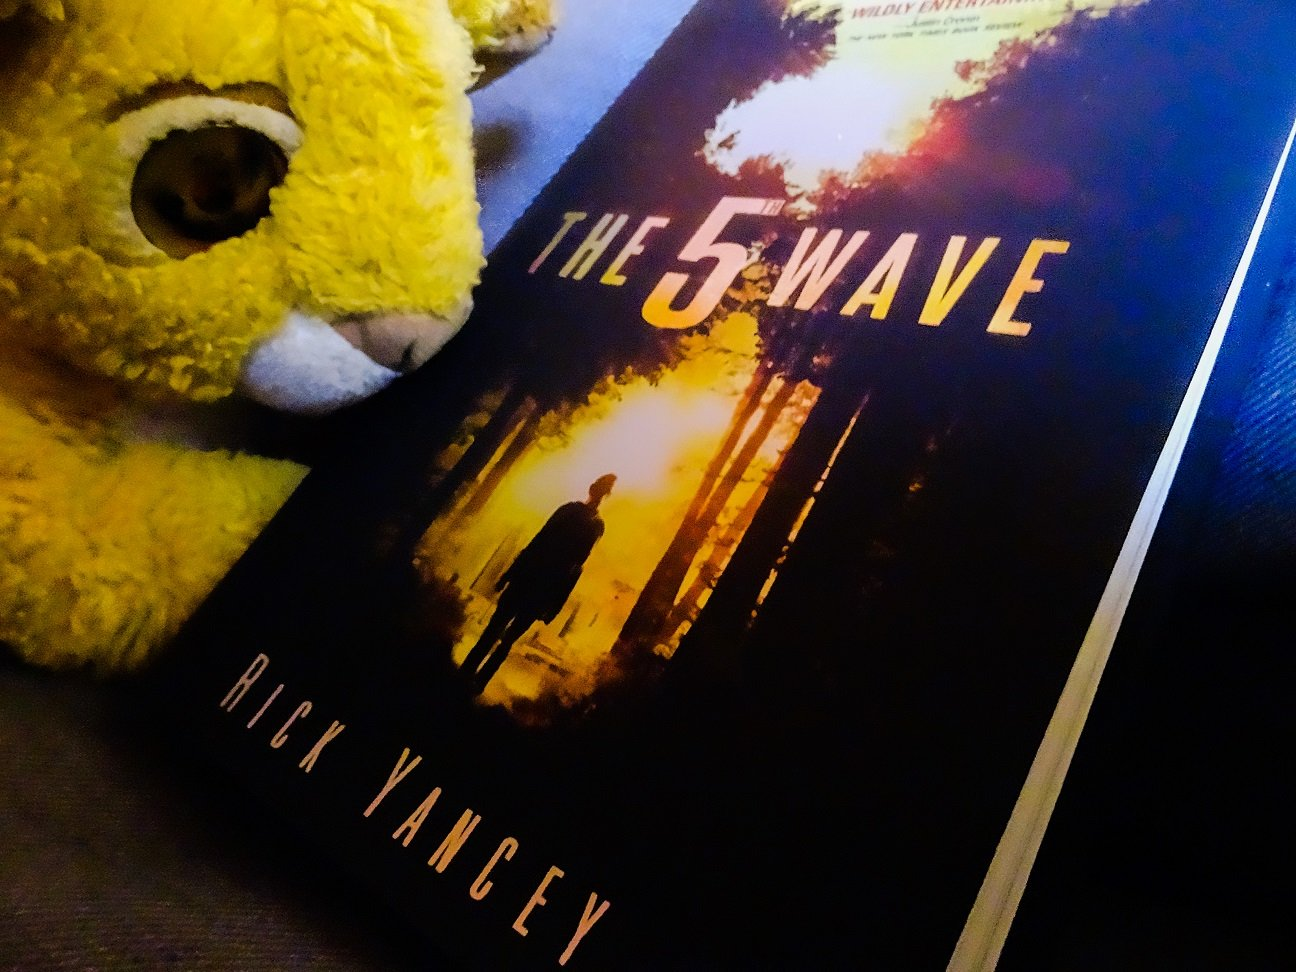 """The 5th Wave"" by Rick Yancey"